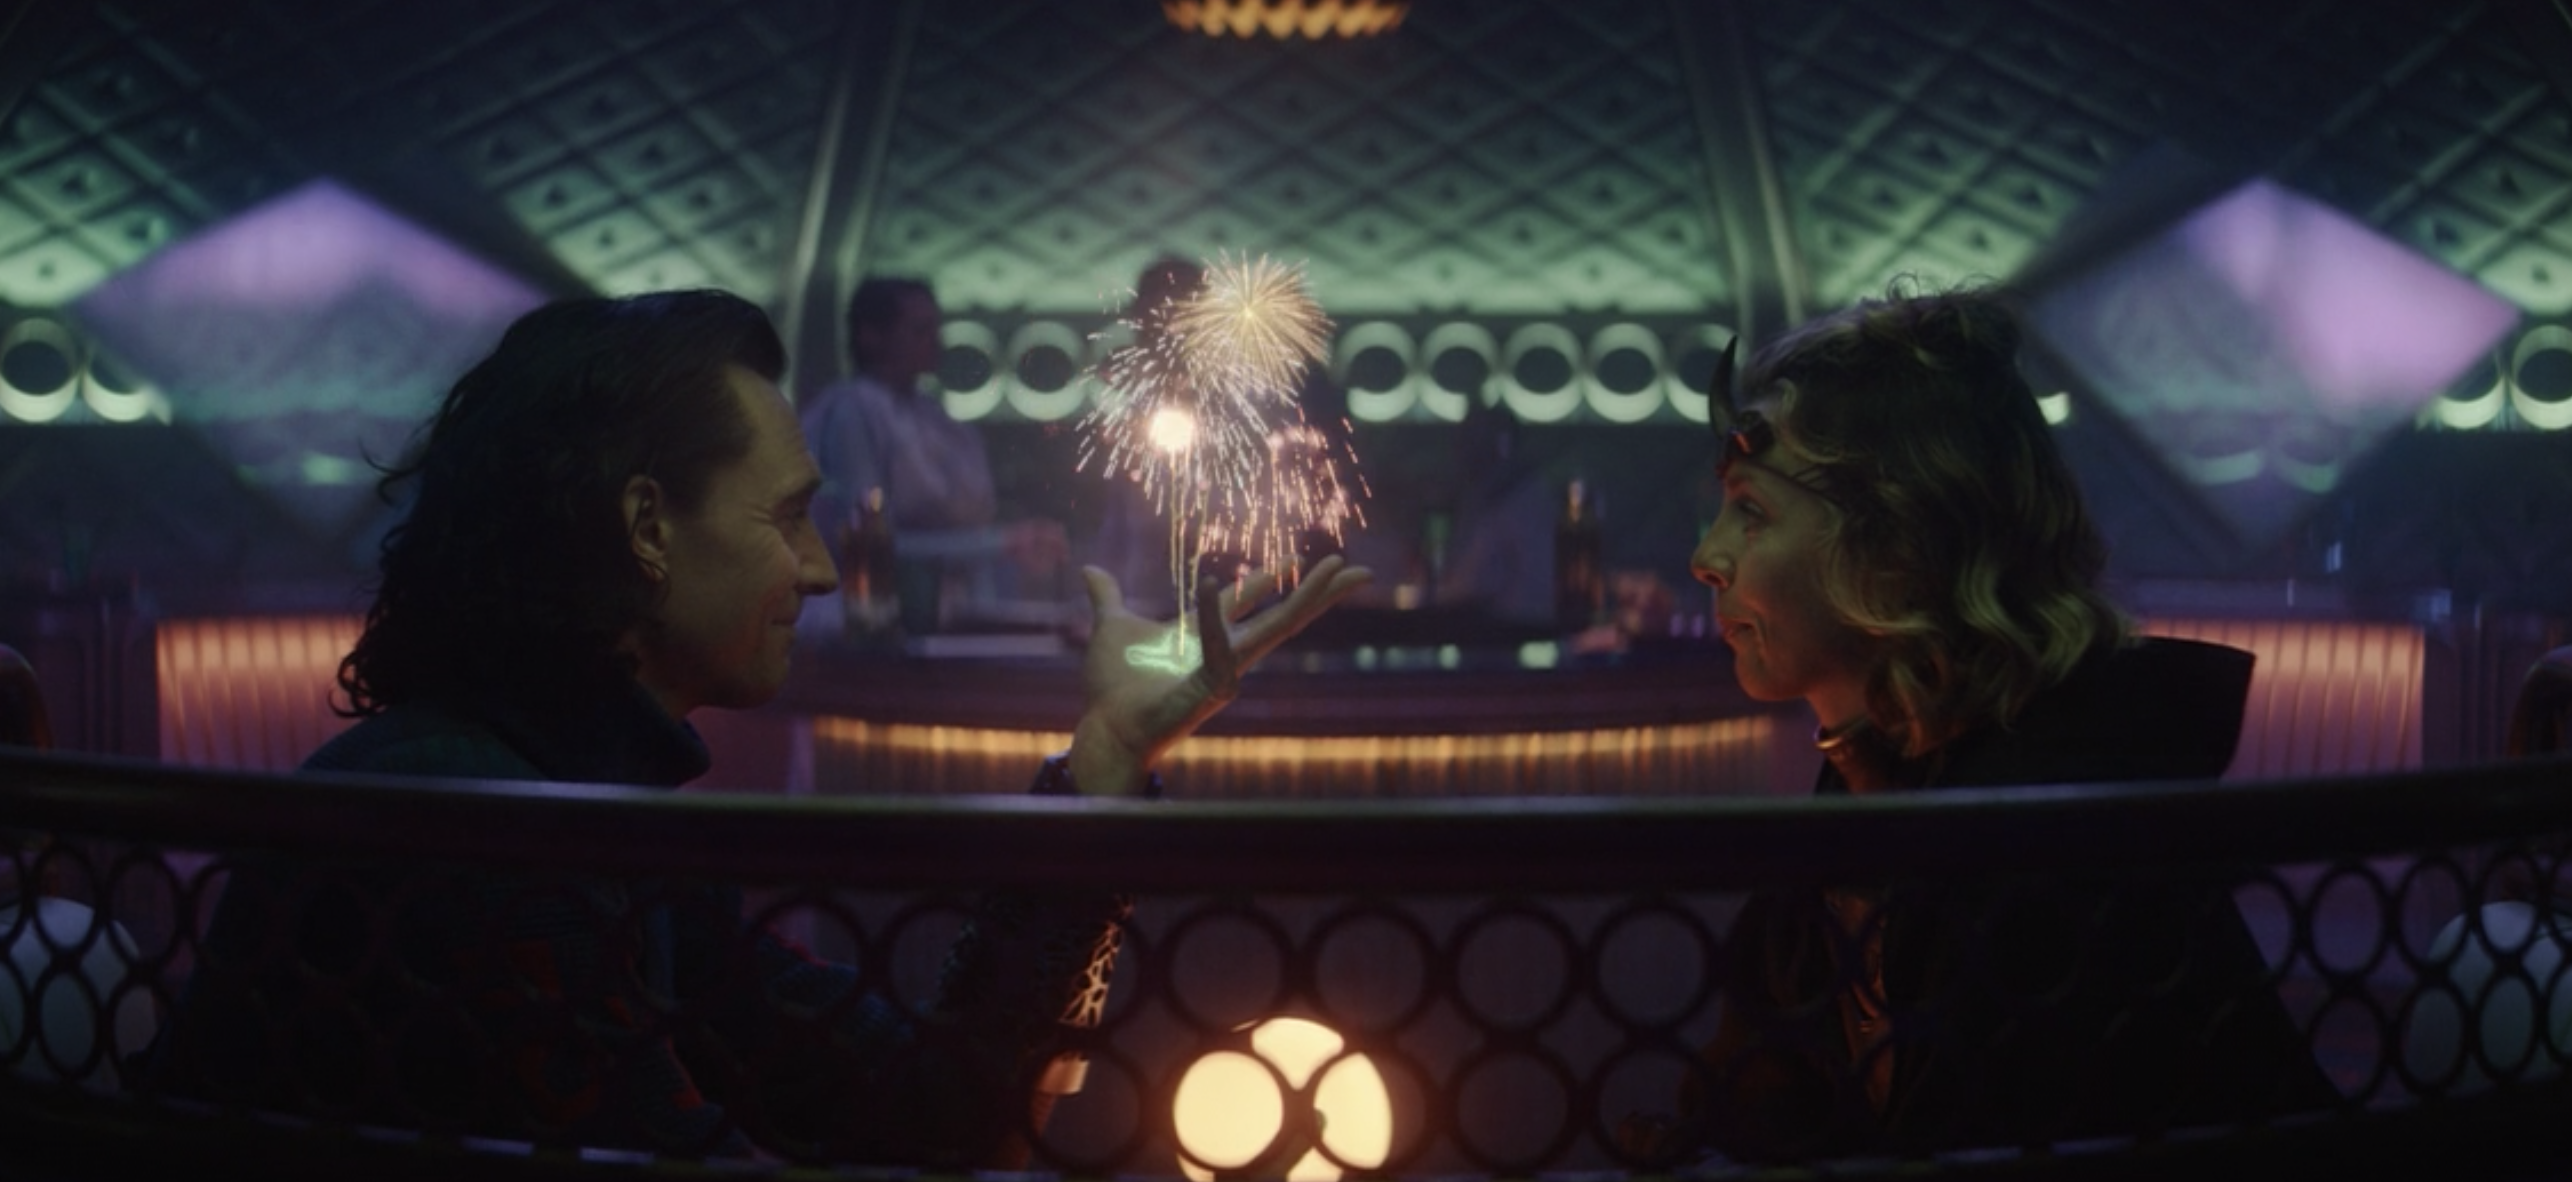 Loki making fireworks appear in his palm as he talks to Sylvie